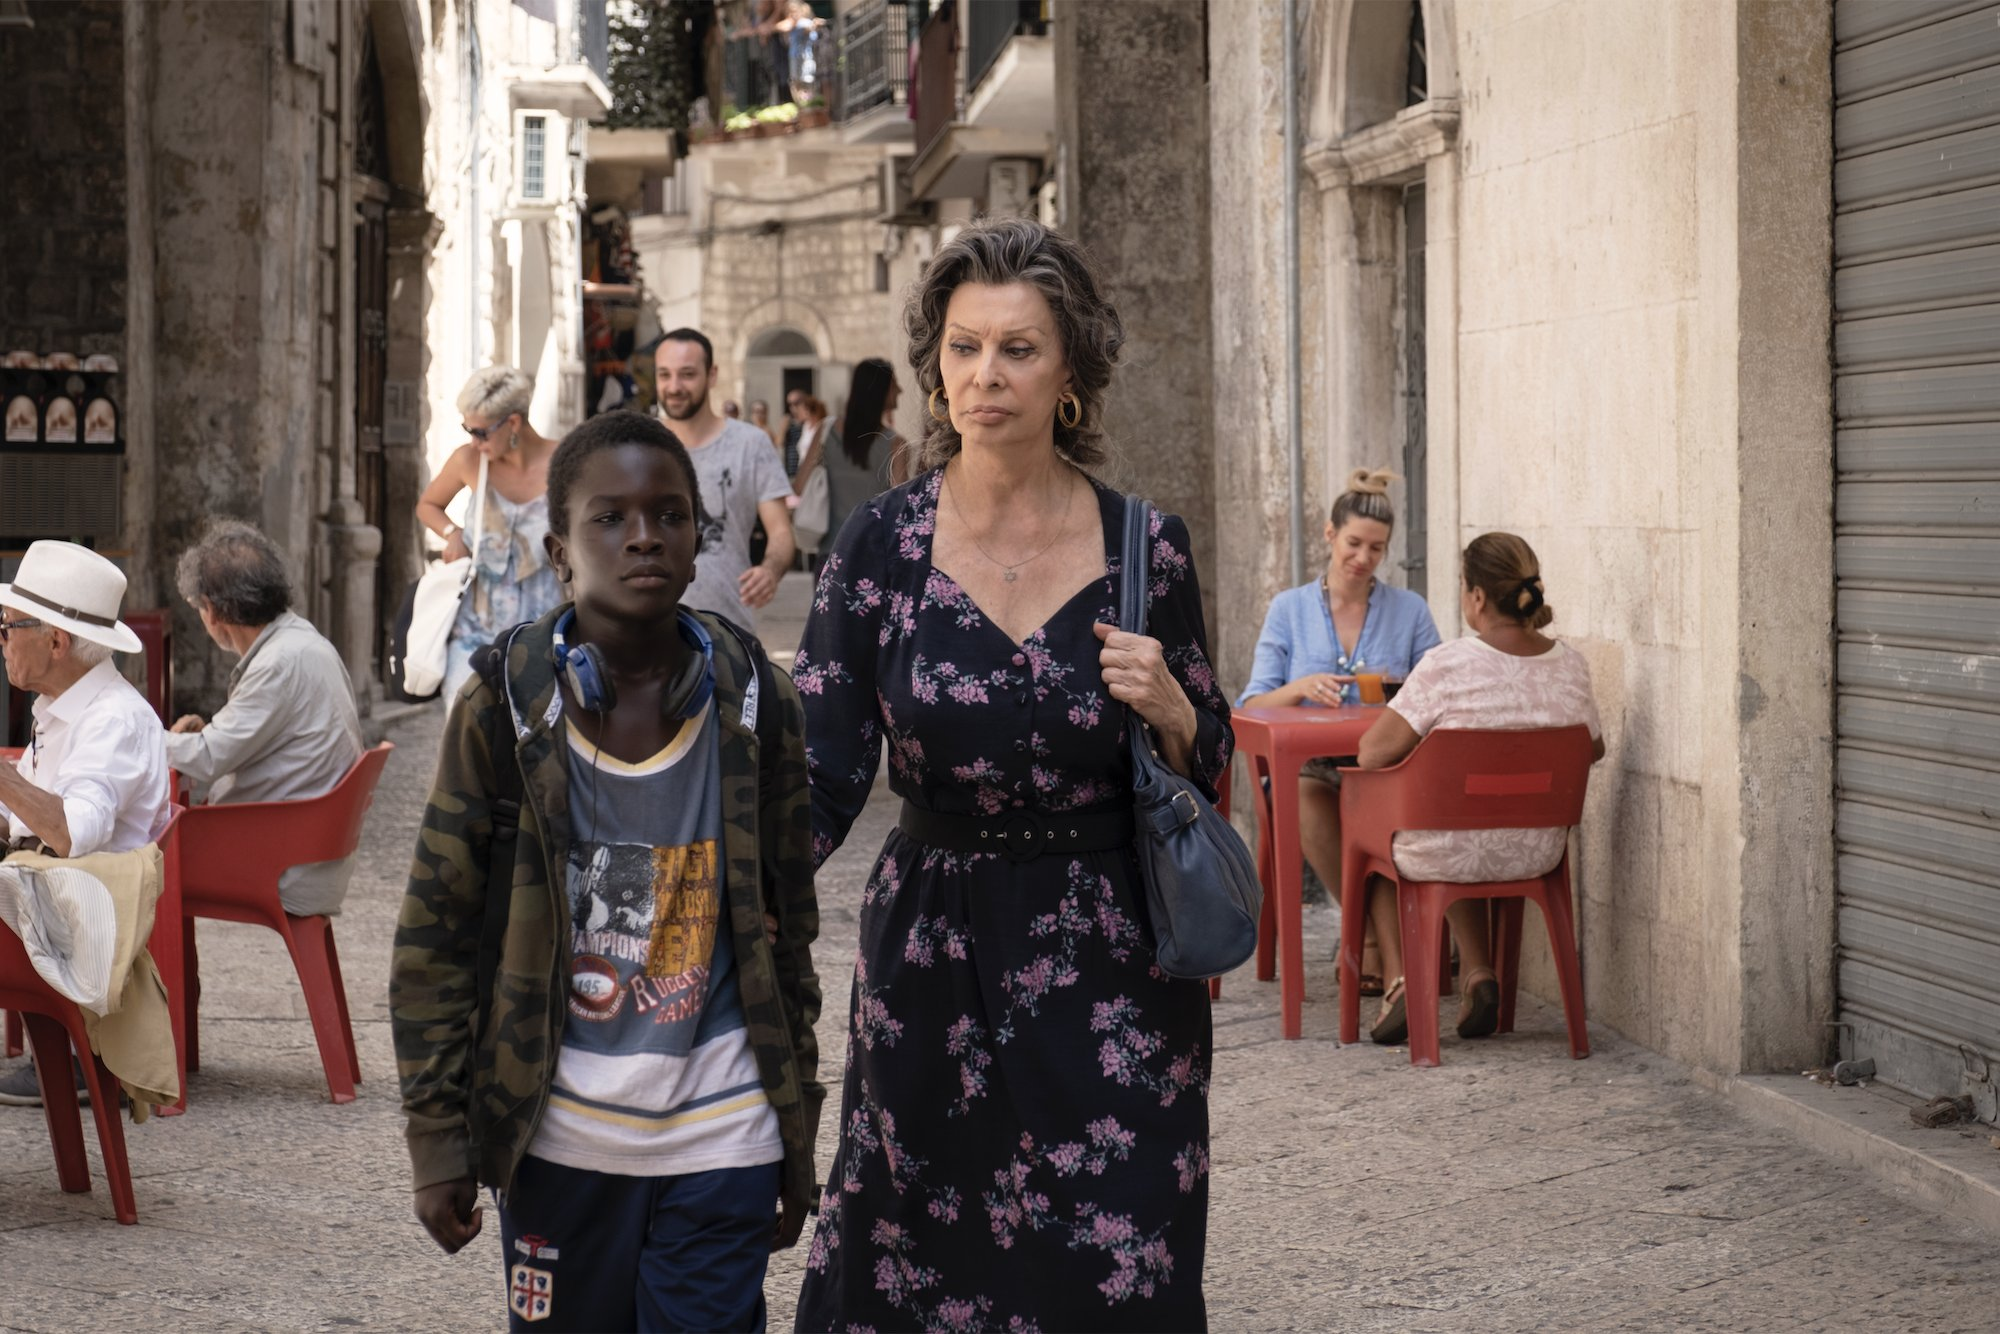 The Life Ahead stars Sophia Loren as Madame Rosa, a Holocaust survivor living in seaside Italy who takes in a 12-year-old boy without a home. (Photo: Twitter/Netflix Film)